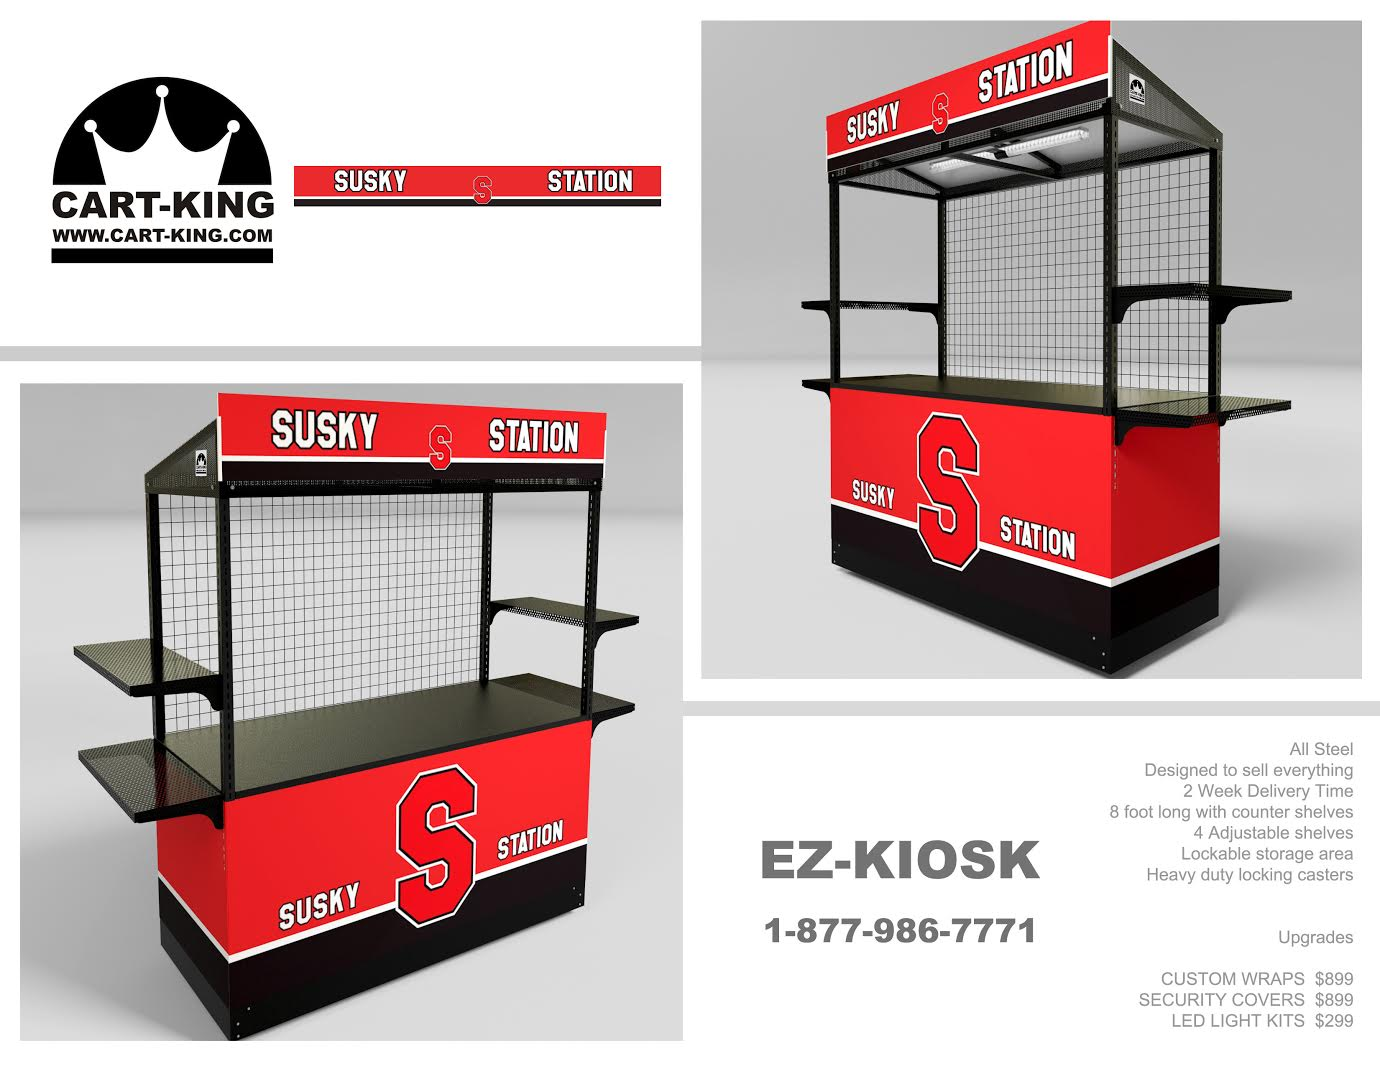 This is a rough draft for what the Susky Station's kiosk will look like.